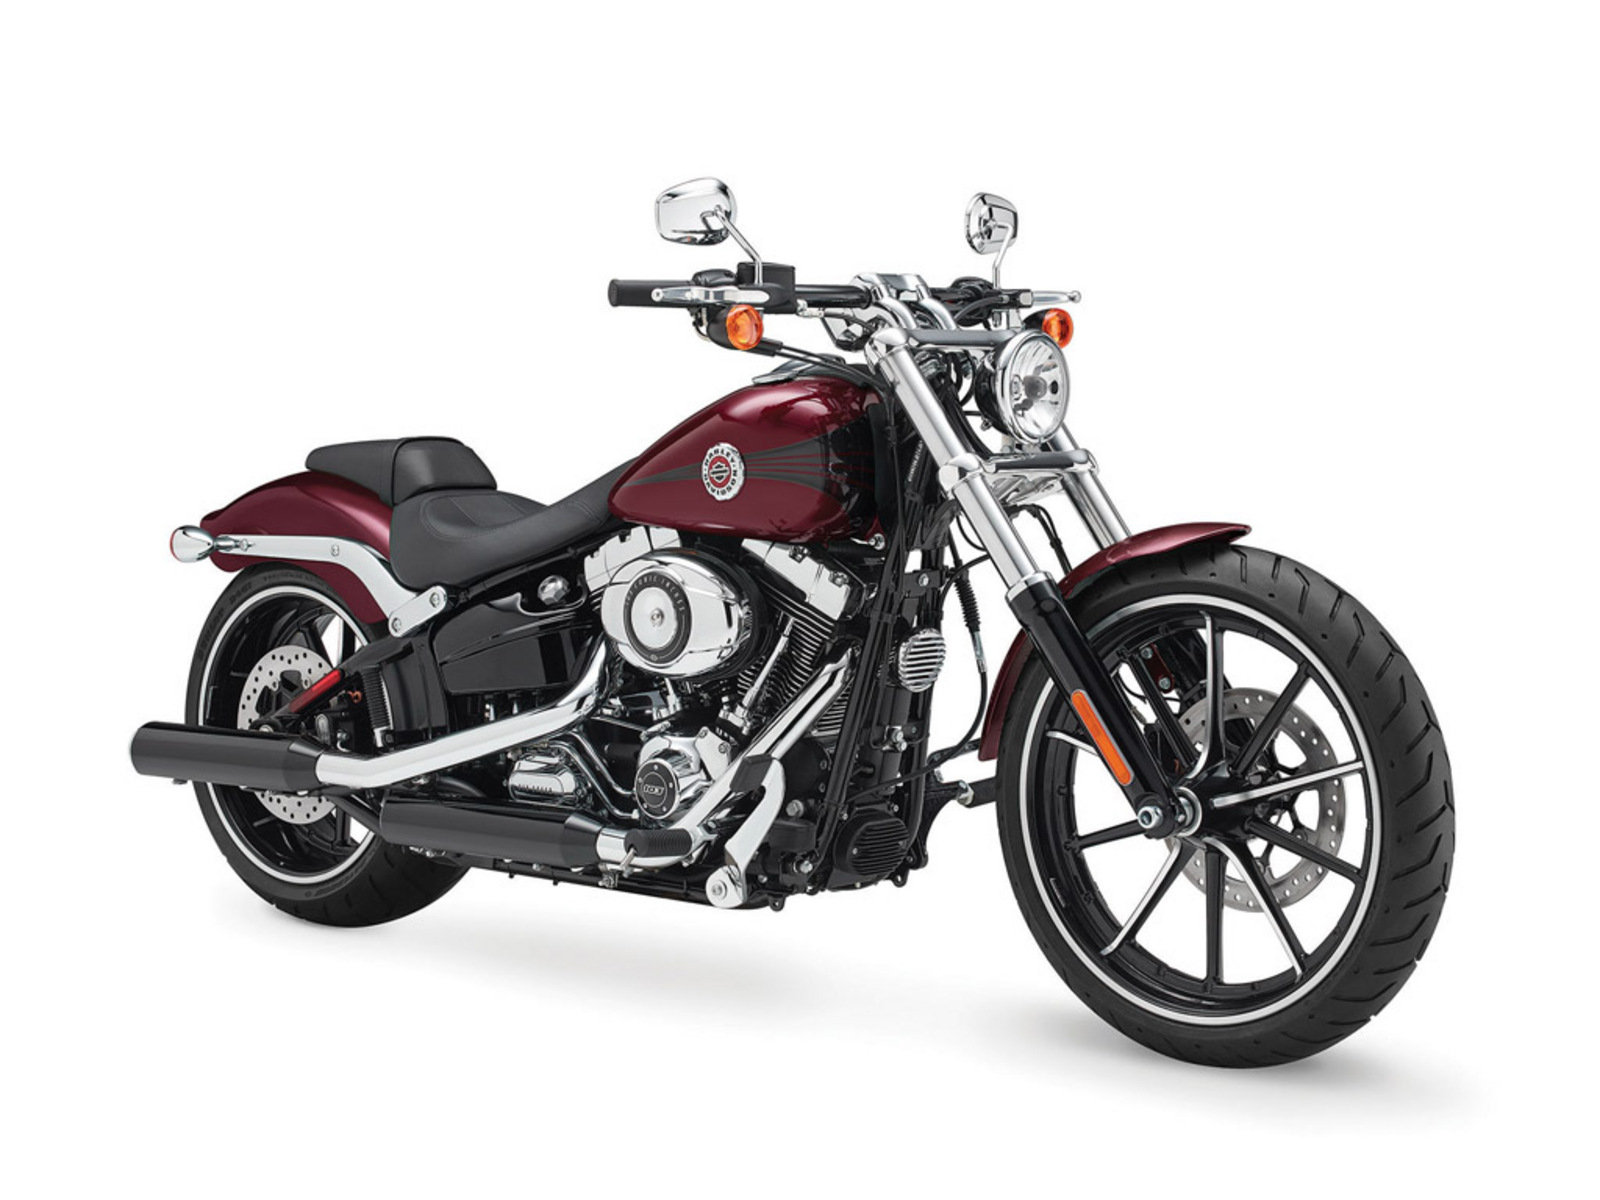 2015 2017 harley davidson softail breakout review top. Black Bedroom Furniture Sets. Home Design Ideas